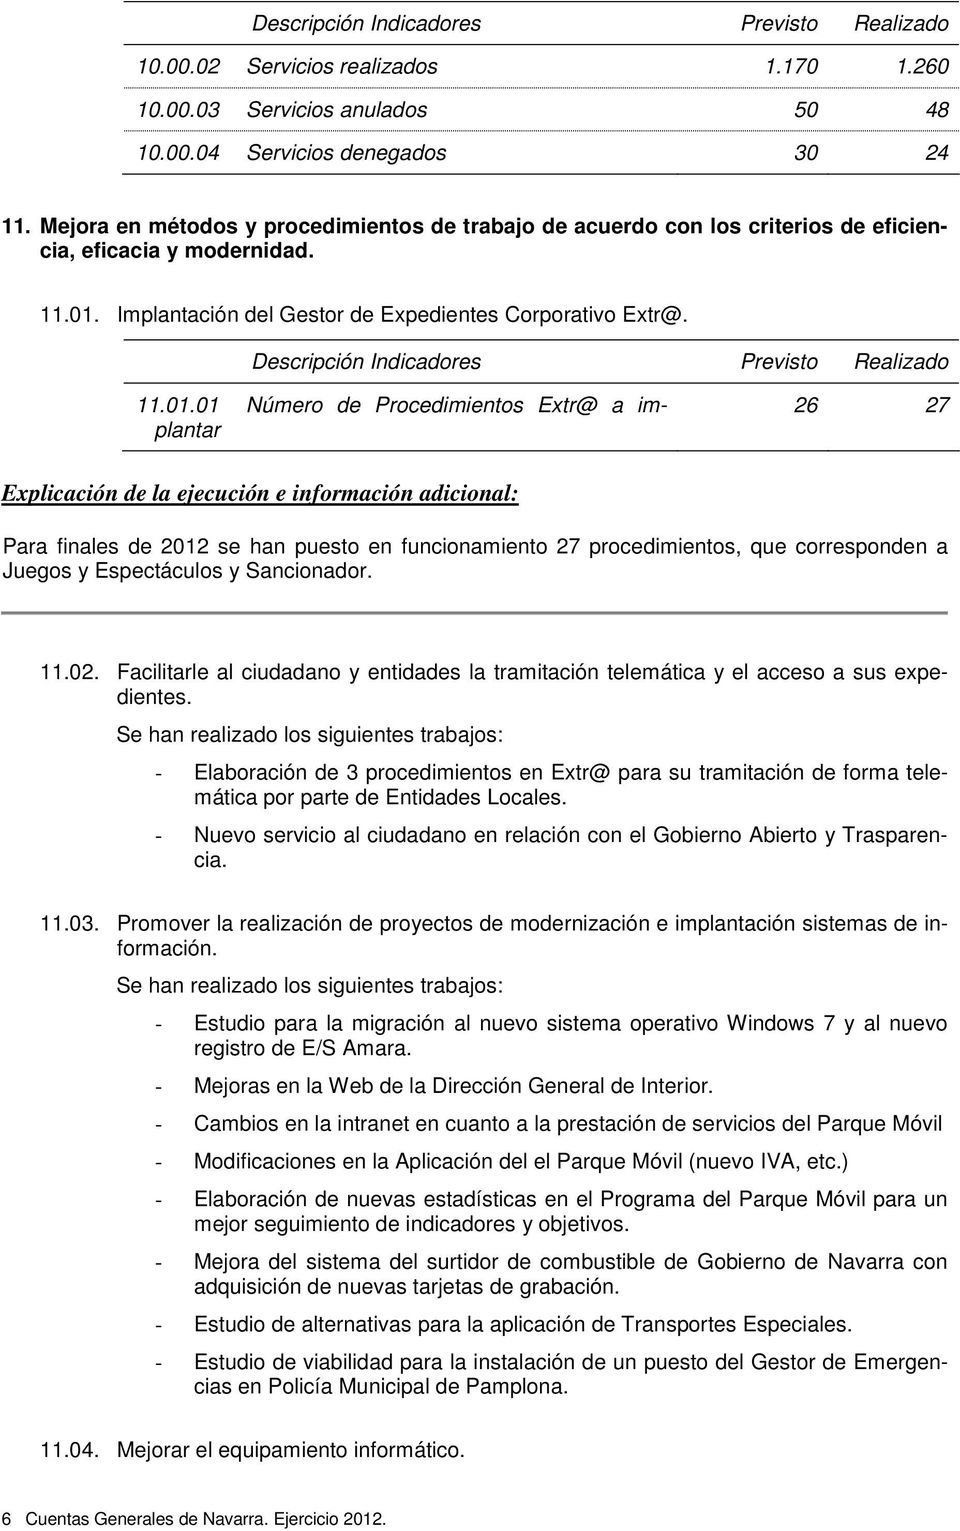 Implantación del Gestor de Expedientes Corporativo Extr@. 11.01.